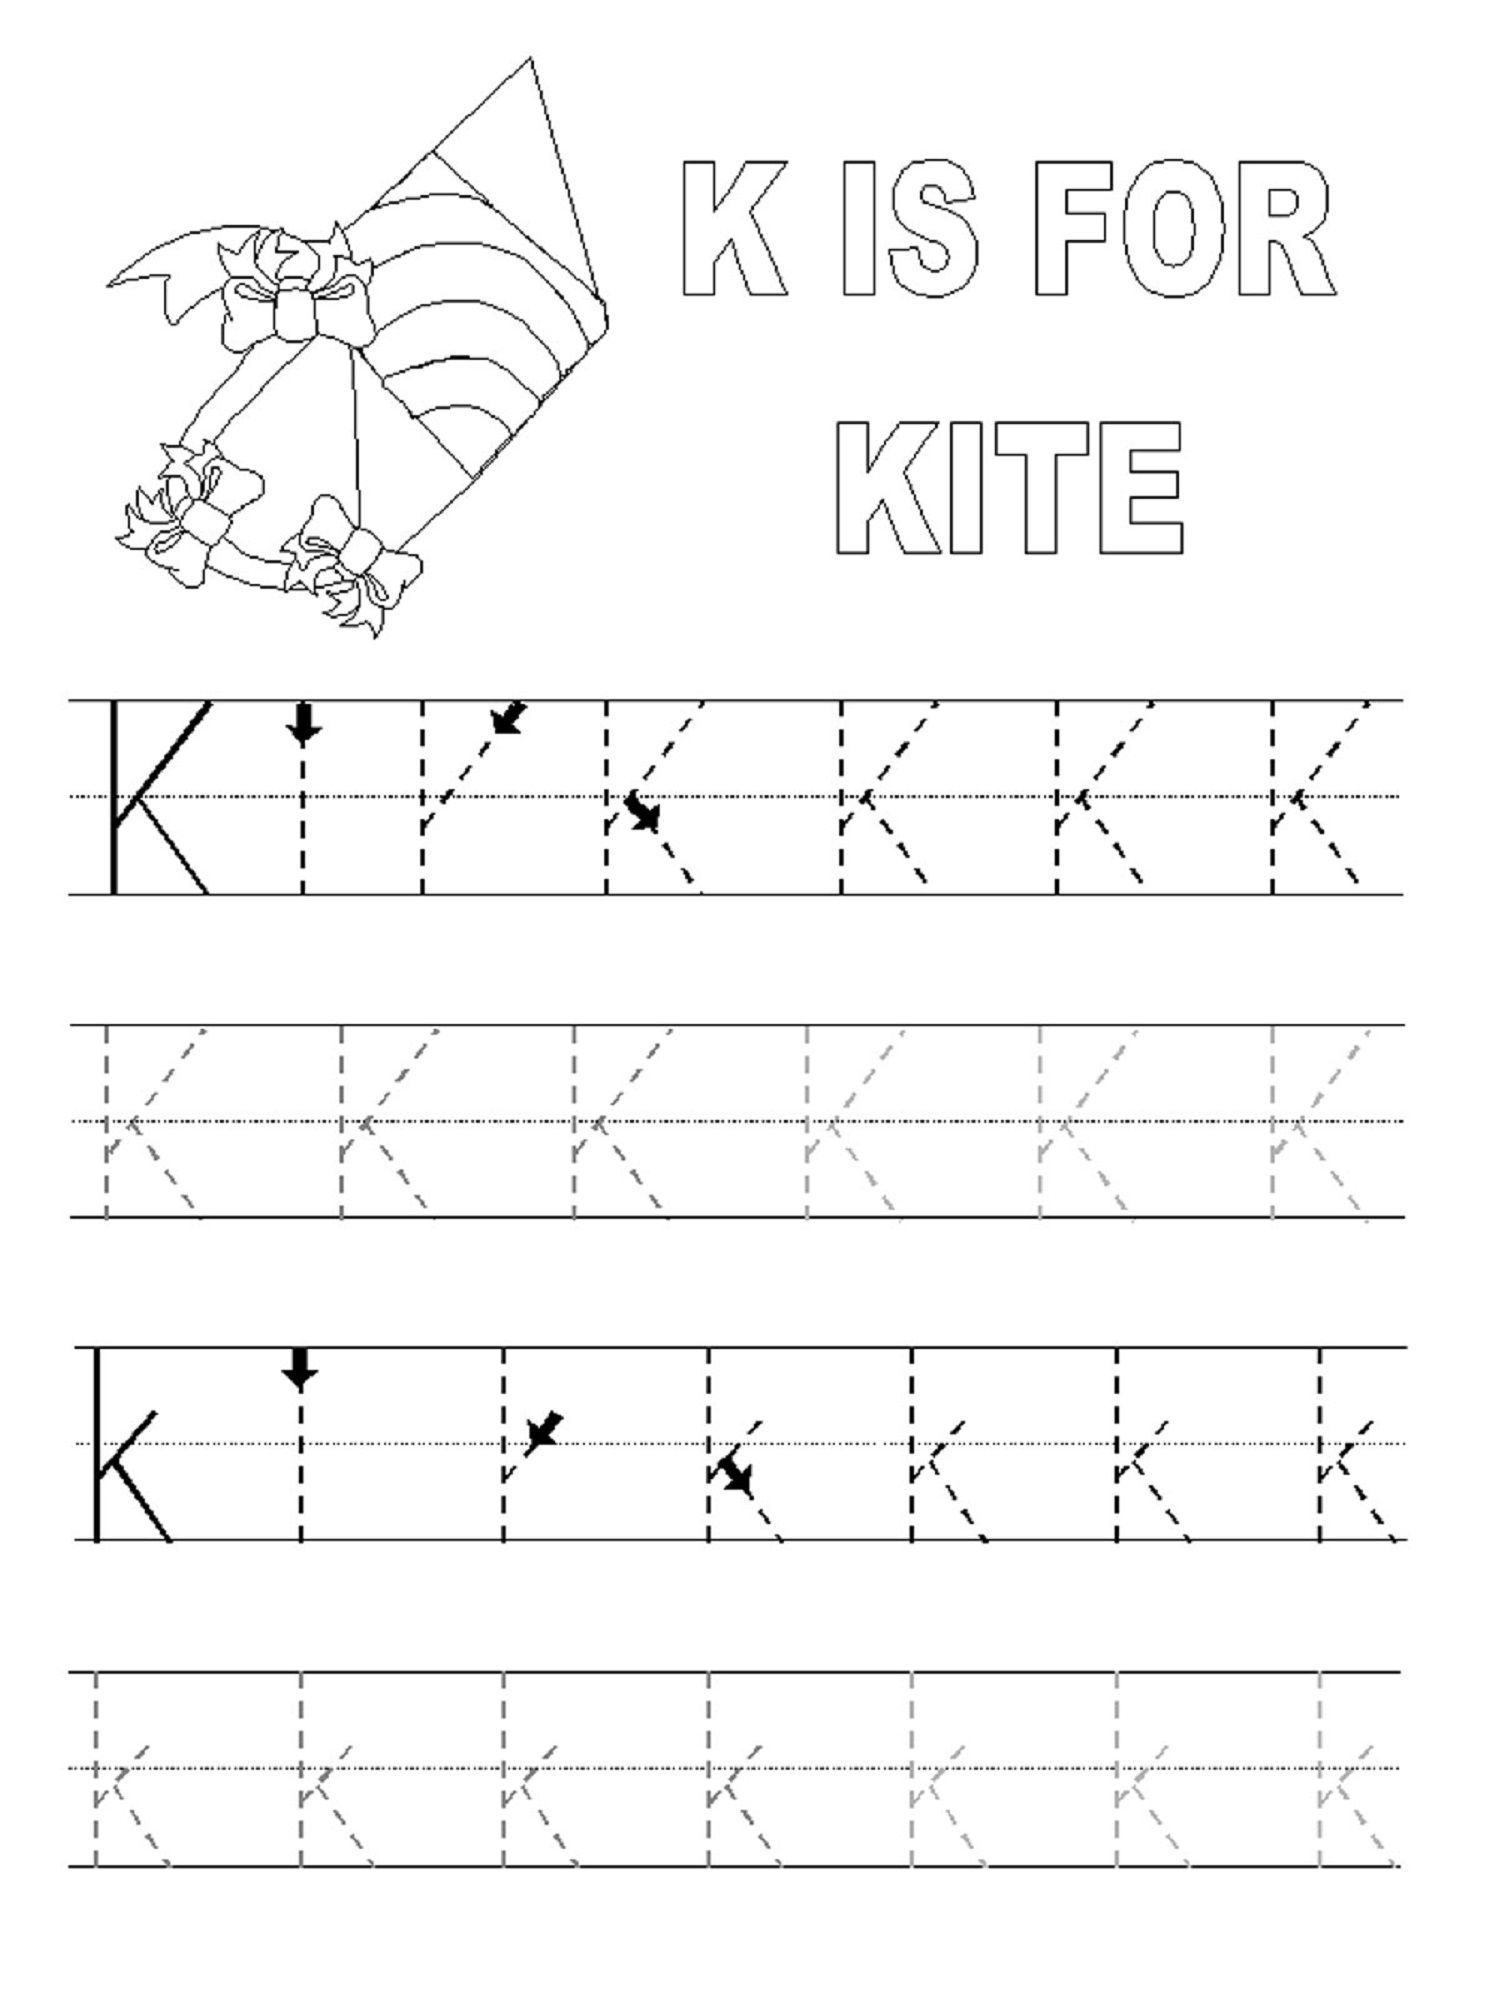 activities alphabet tracing pages - Kindergarten Tracing Pages